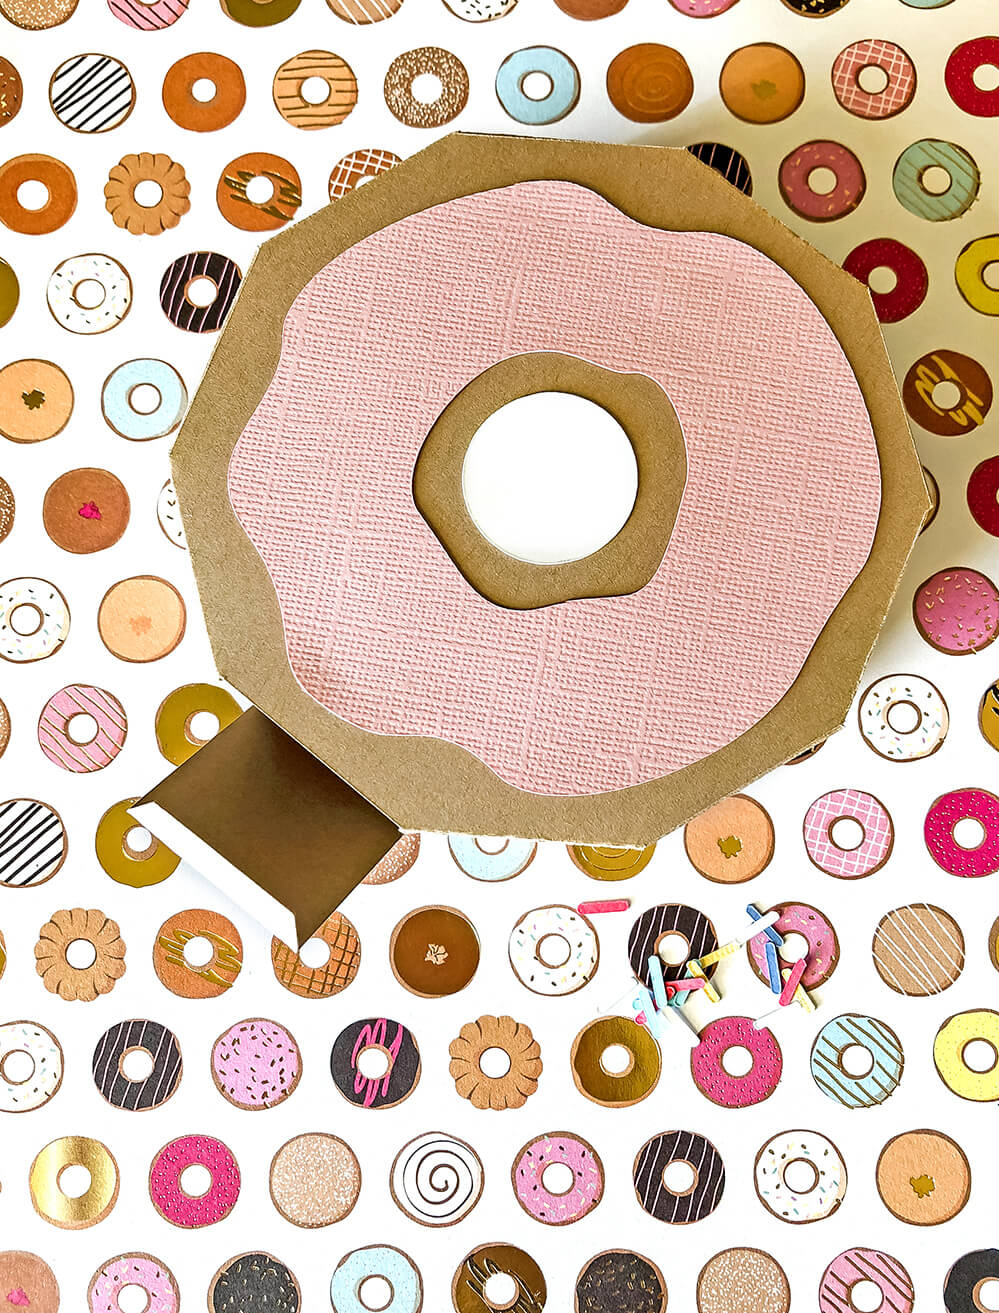 Glue frosting to a Donut party favor box